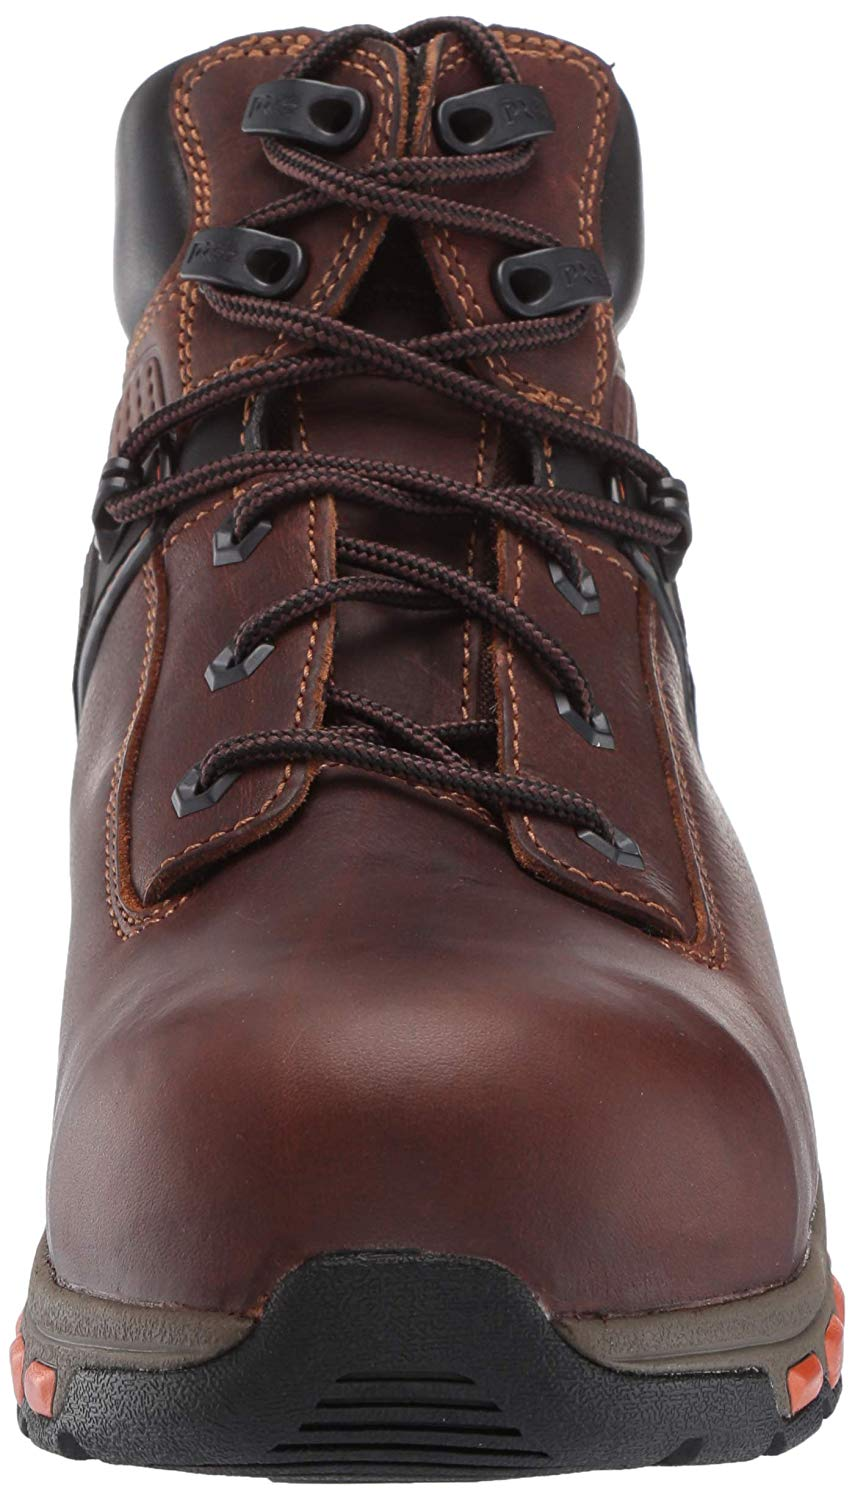 a6f39d25c9c Details about Timberland PRO Men's Hypercharge 6